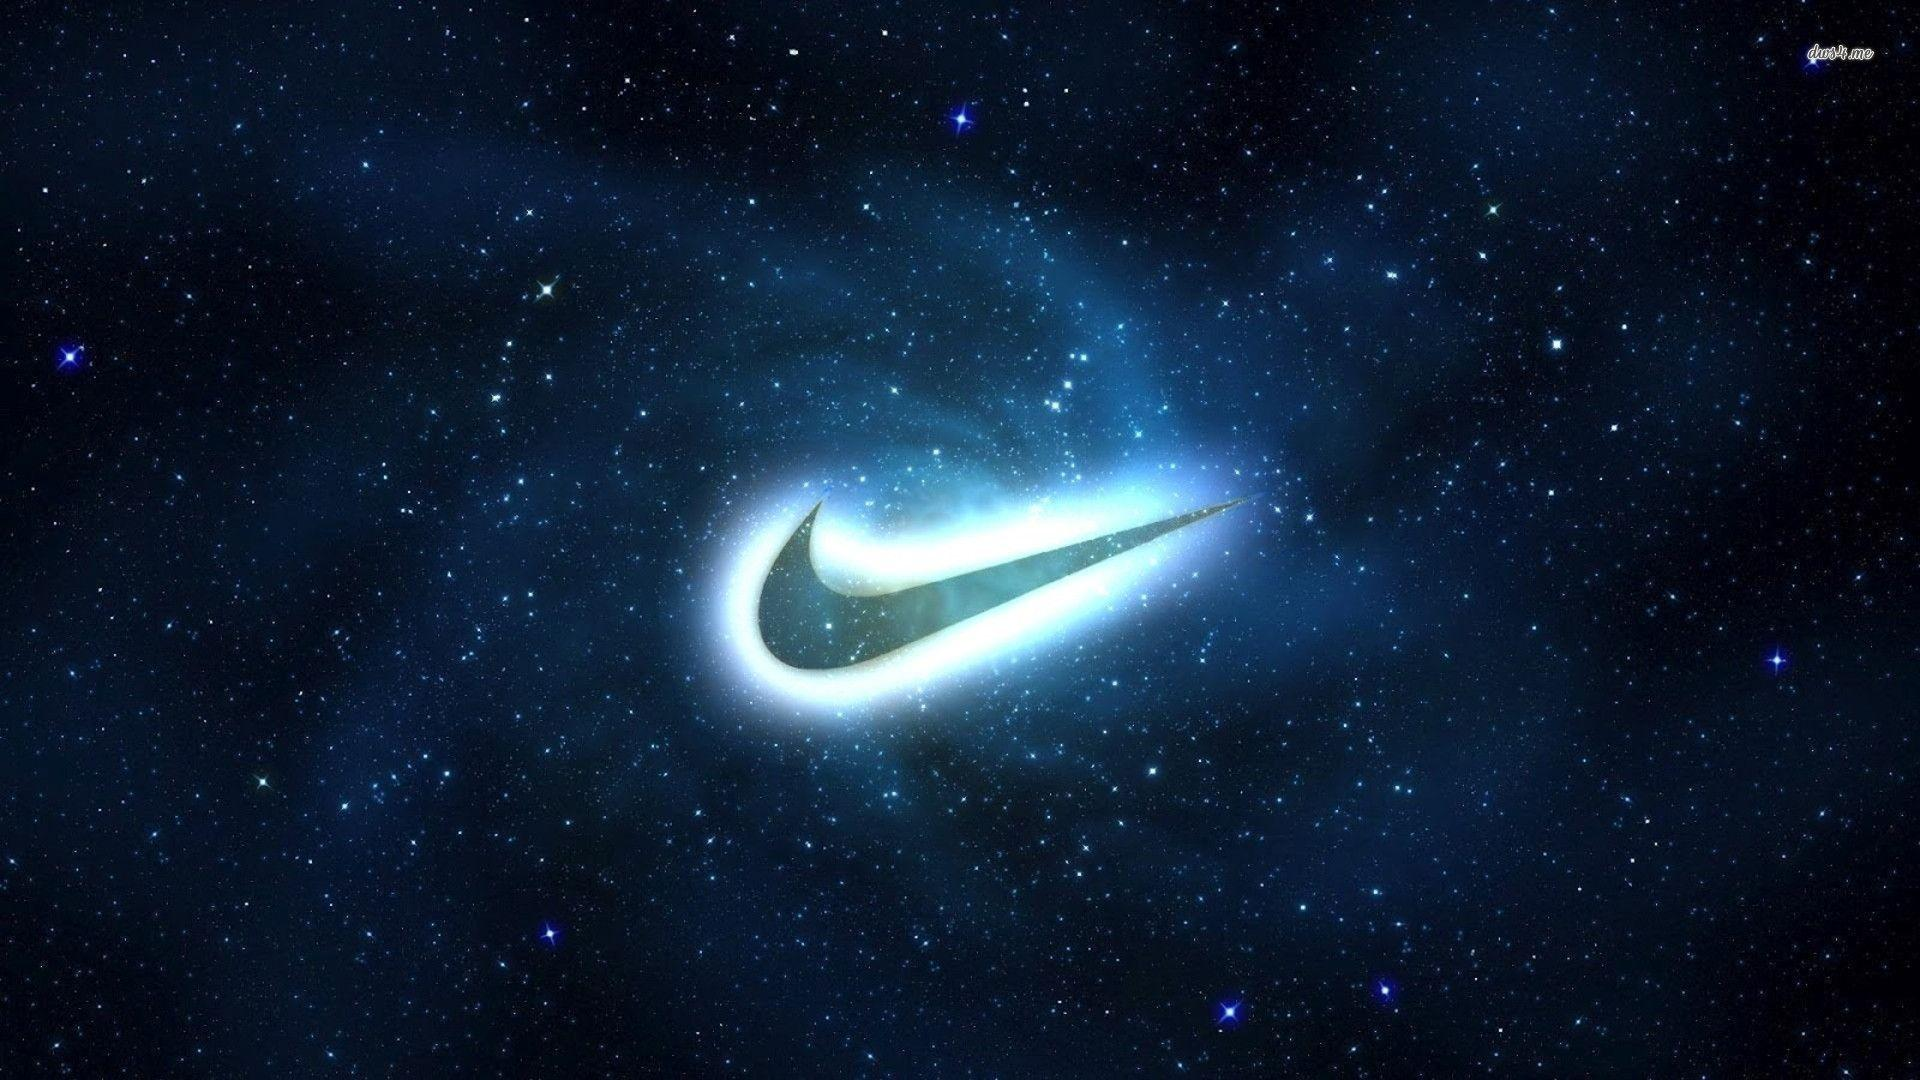 20468-glowing-nike-logo-1920x1080-digital-art-wallpaper Nike